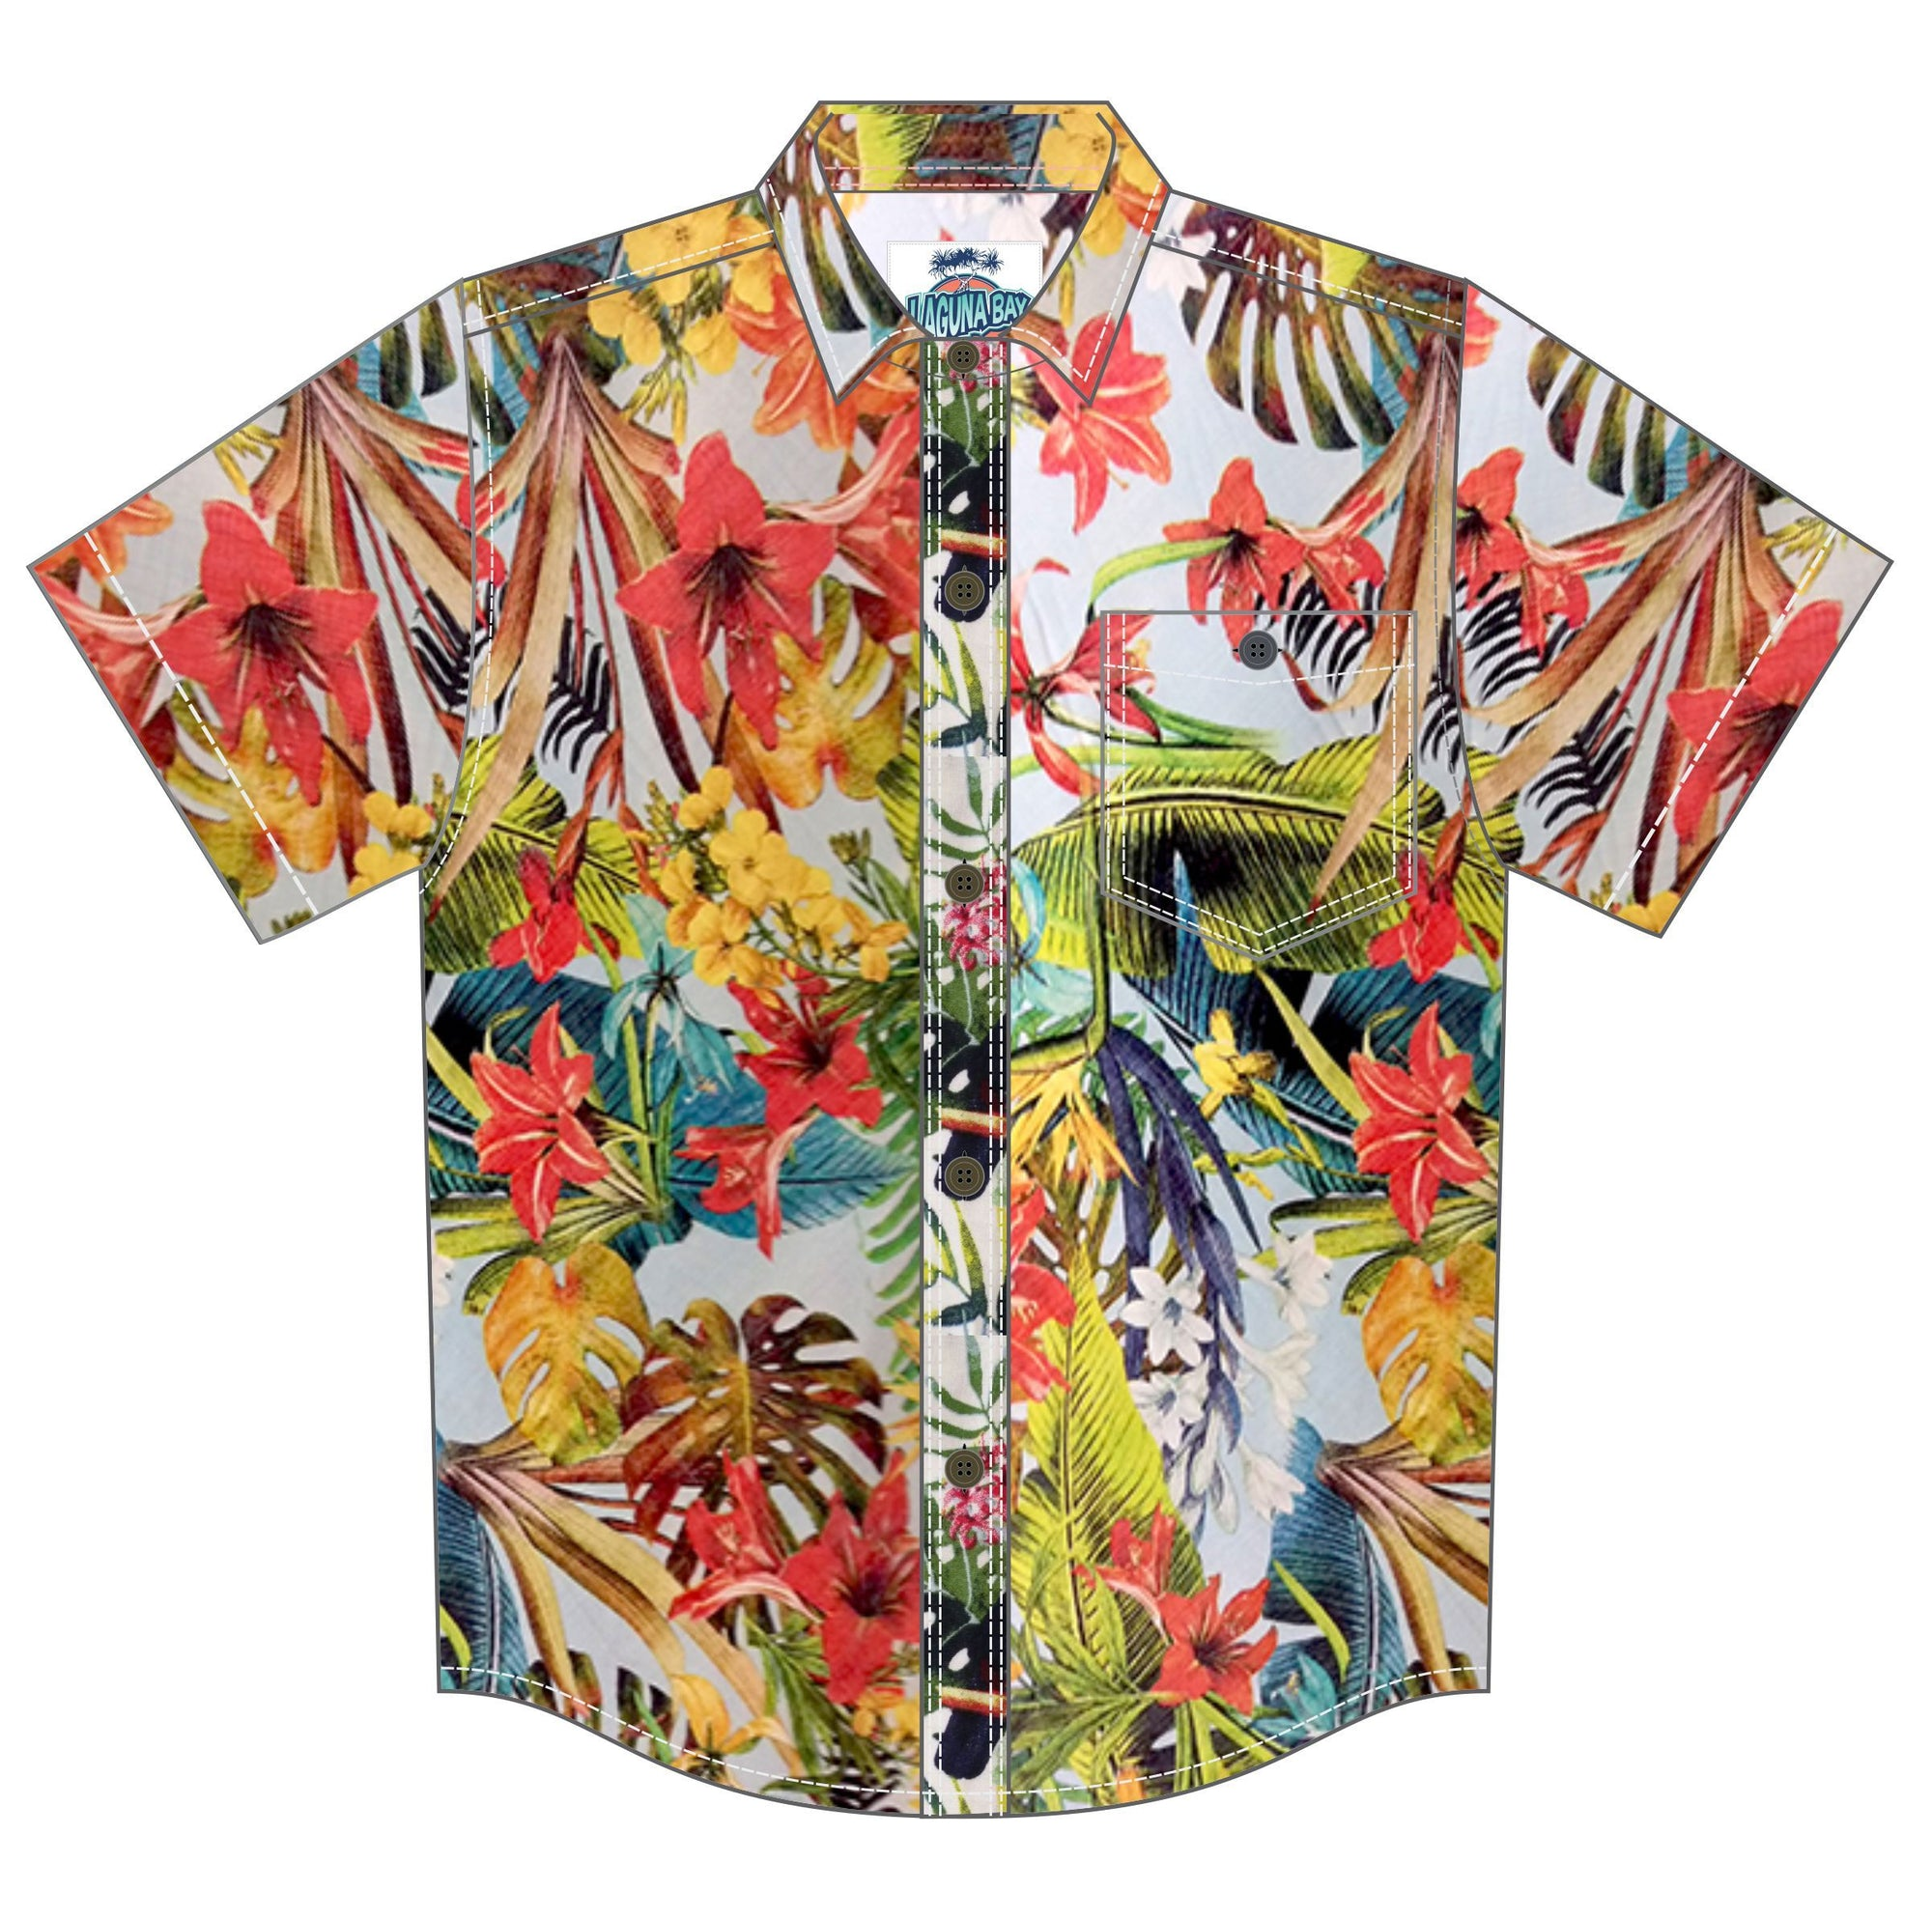 The Noosa Shirt - Laguna Bay Original GROMS CLOTHING Laguna Bay